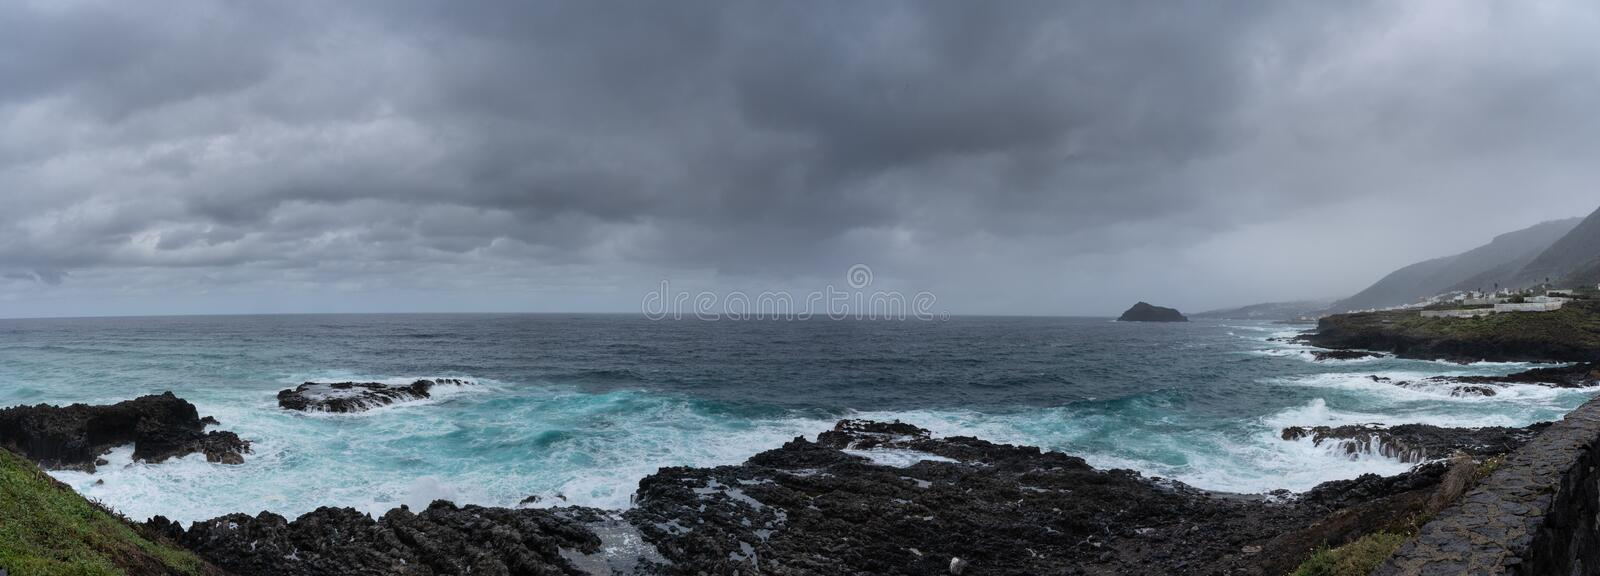 La Punta del Canto, Las Cruces, Tenerife, Espania - October 28, 2018: Panoramic view of La Punta del Canto from the town of Las. Cruces, across the Atlantic royalty free stock photography